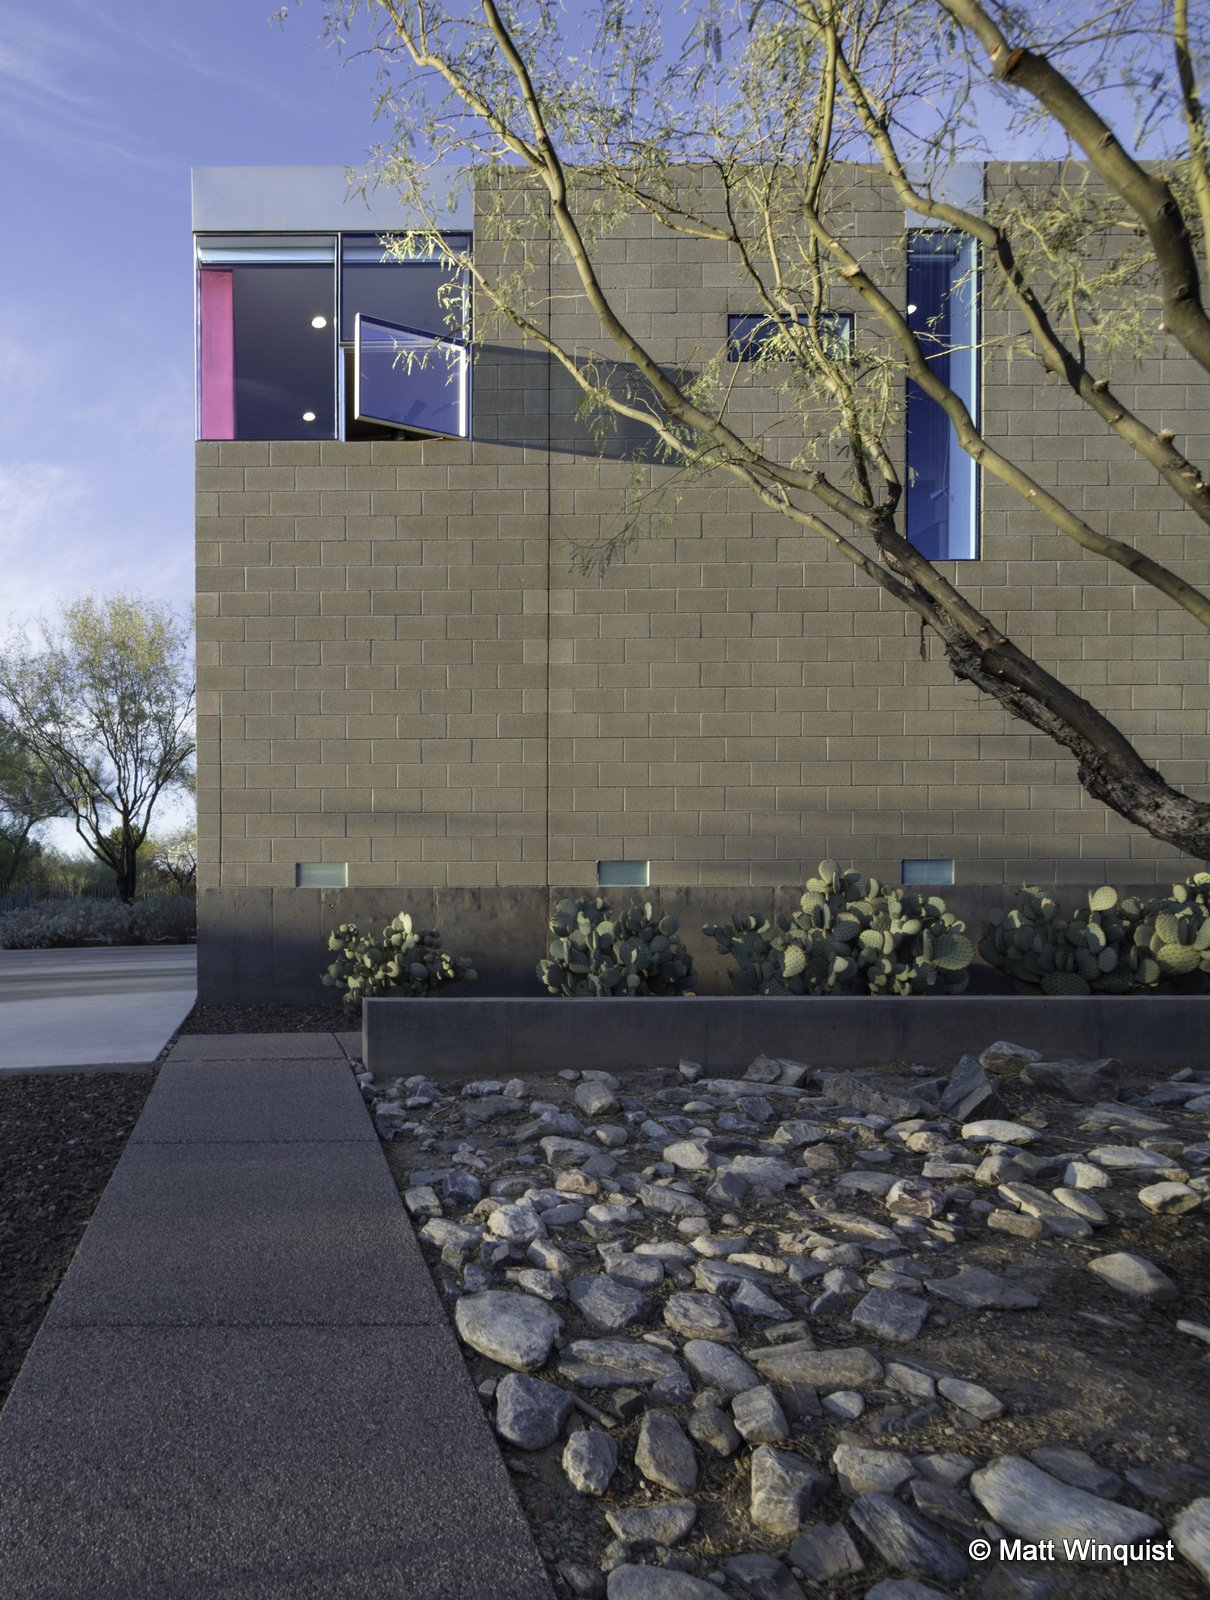 Exterior, Concrete, Metal, Brick, Flat, and House Inspired by the color of Strawberry Hedgehog cactus thriving in the front yard of the house, the window wants to be an abstract flower drawing guests toward the front entrance. The wall lights are abstract luminarias of the southwest landscape.  Exterior Metal Concrete Brick Photos from Essence of the Desert